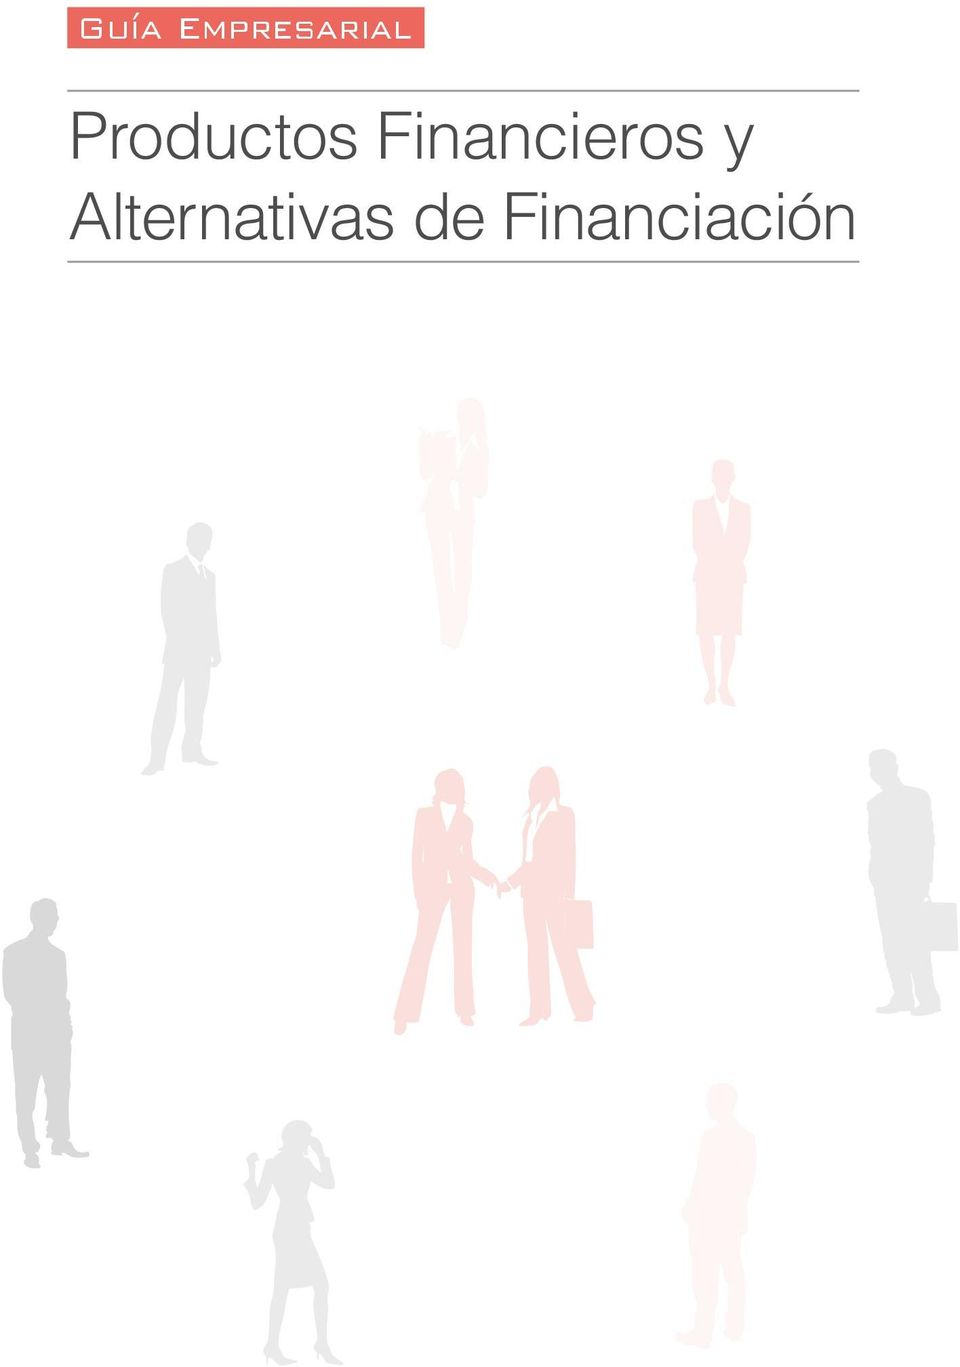 Financieros y